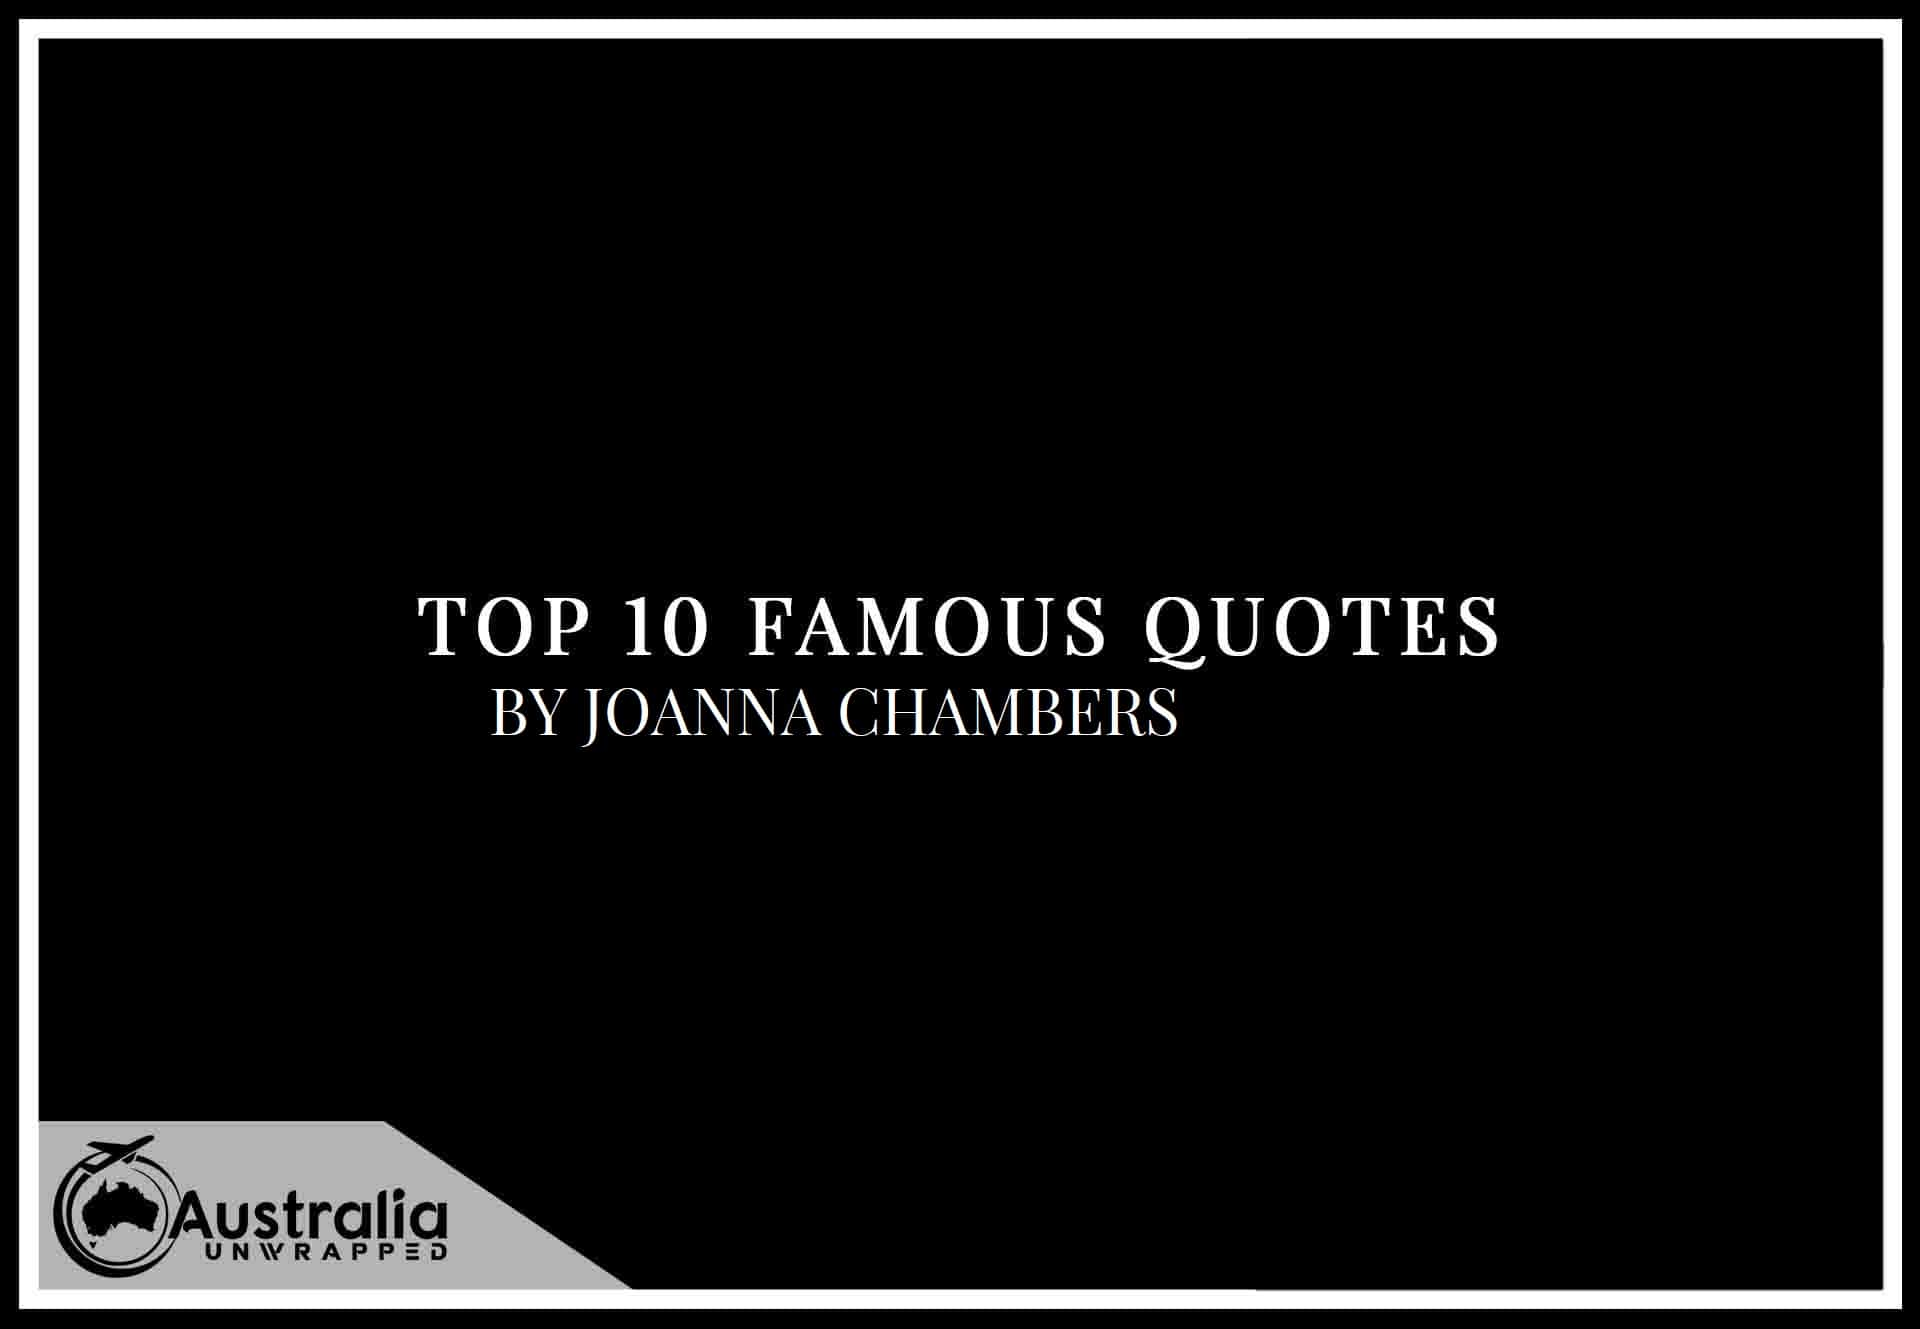 Top 10 Famous Quotes by Author Joanna Chambers